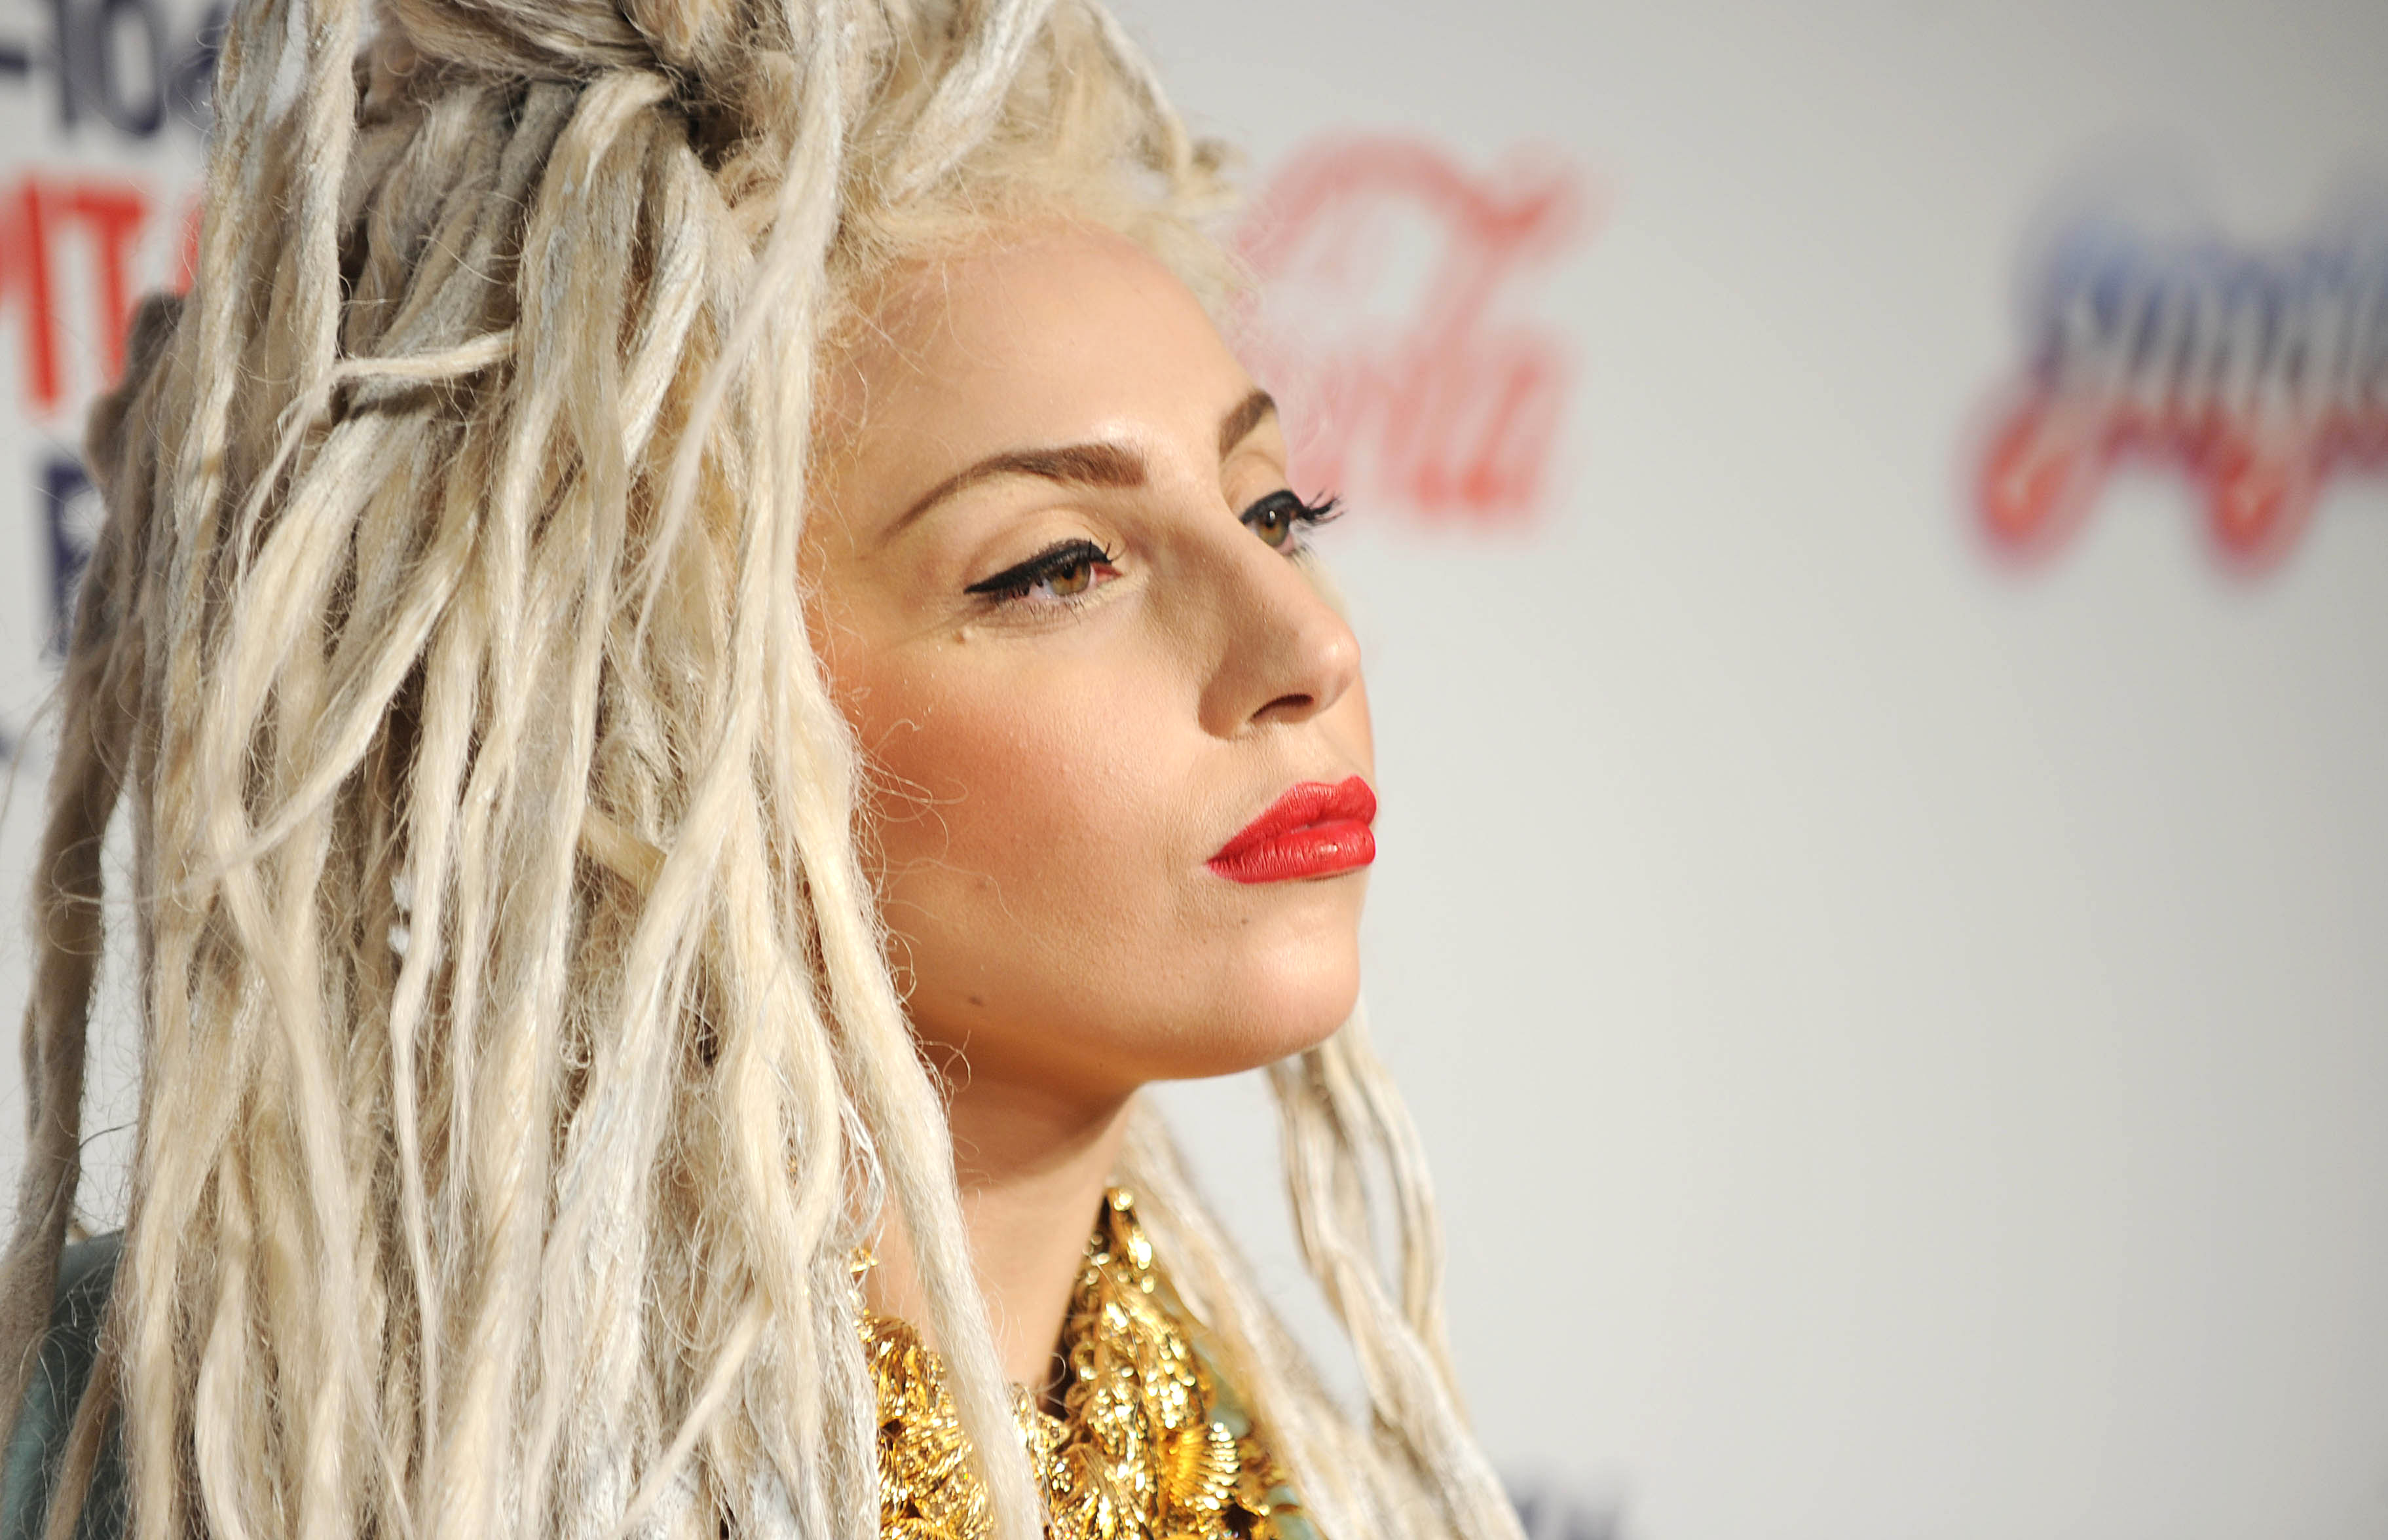 Lady Gaga attends the Capital FM Jingle Bell Ball at 02 Arena on Dec ... Lady Gaga